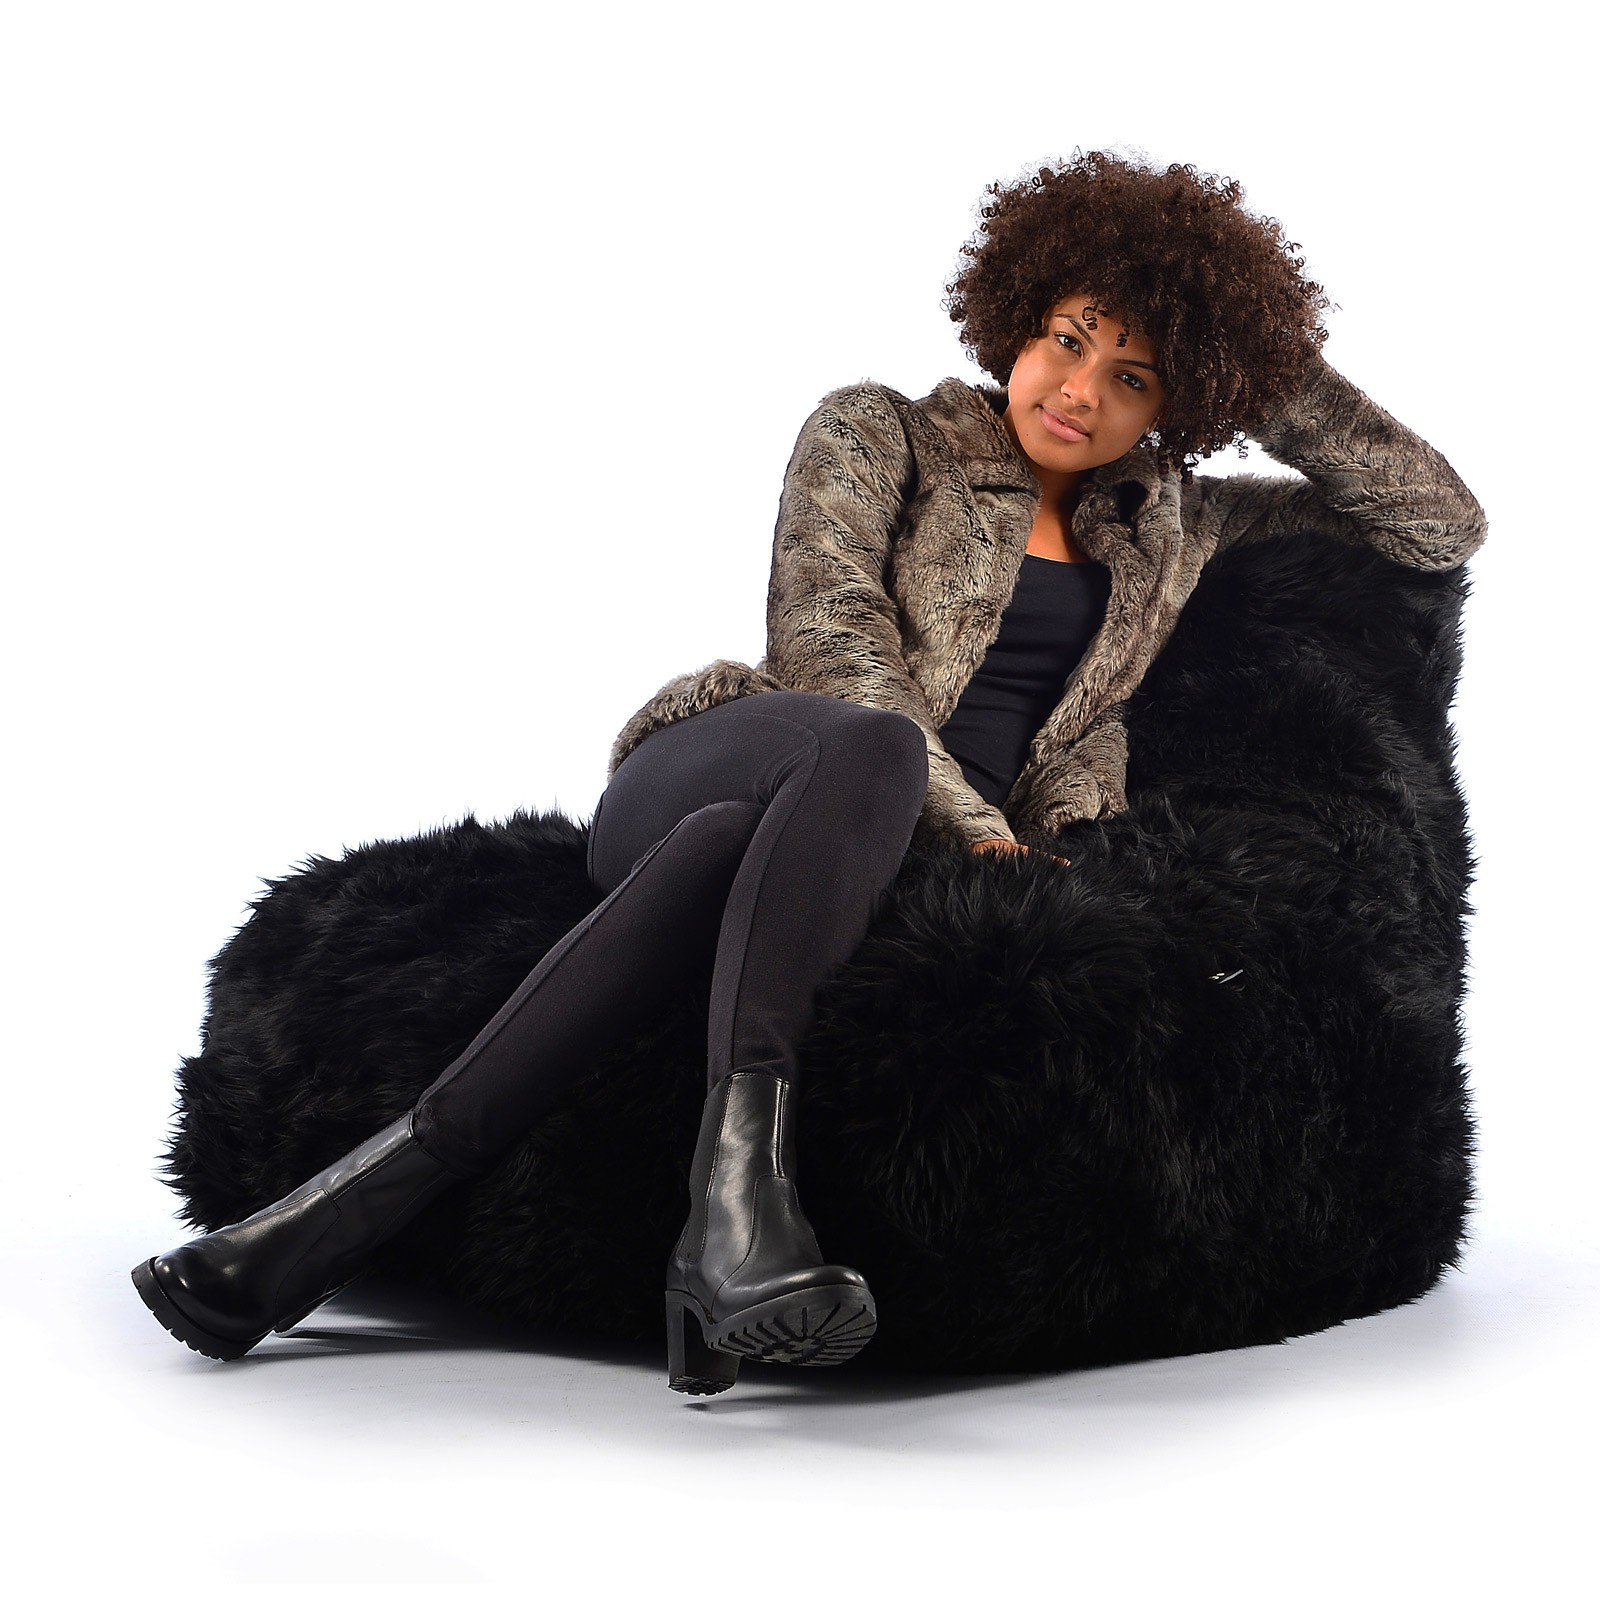 b-bag Extreme Lounging Fellsitzsack mighty-b Sheepskin Fur, Farbe Black